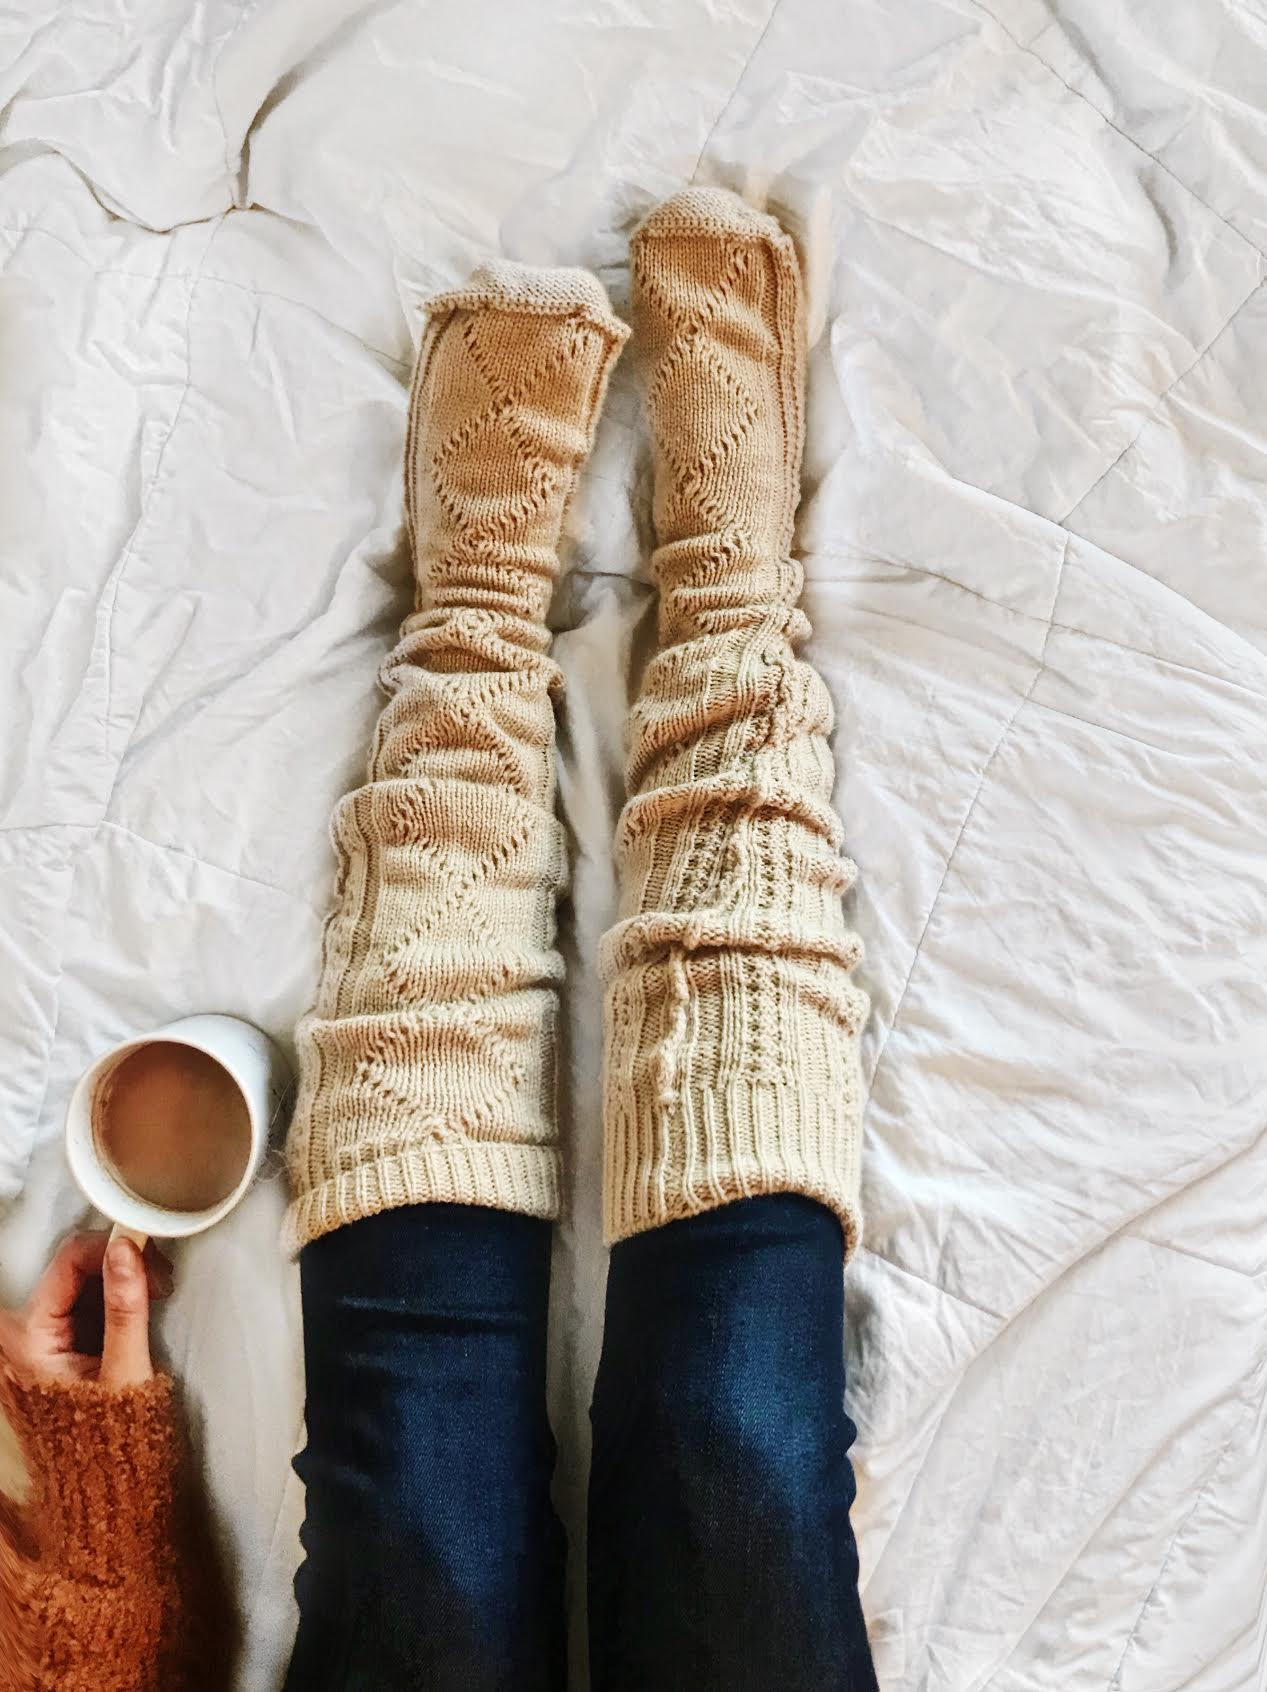 Cozy cable knit socks on the bed fall photo fall inspiration